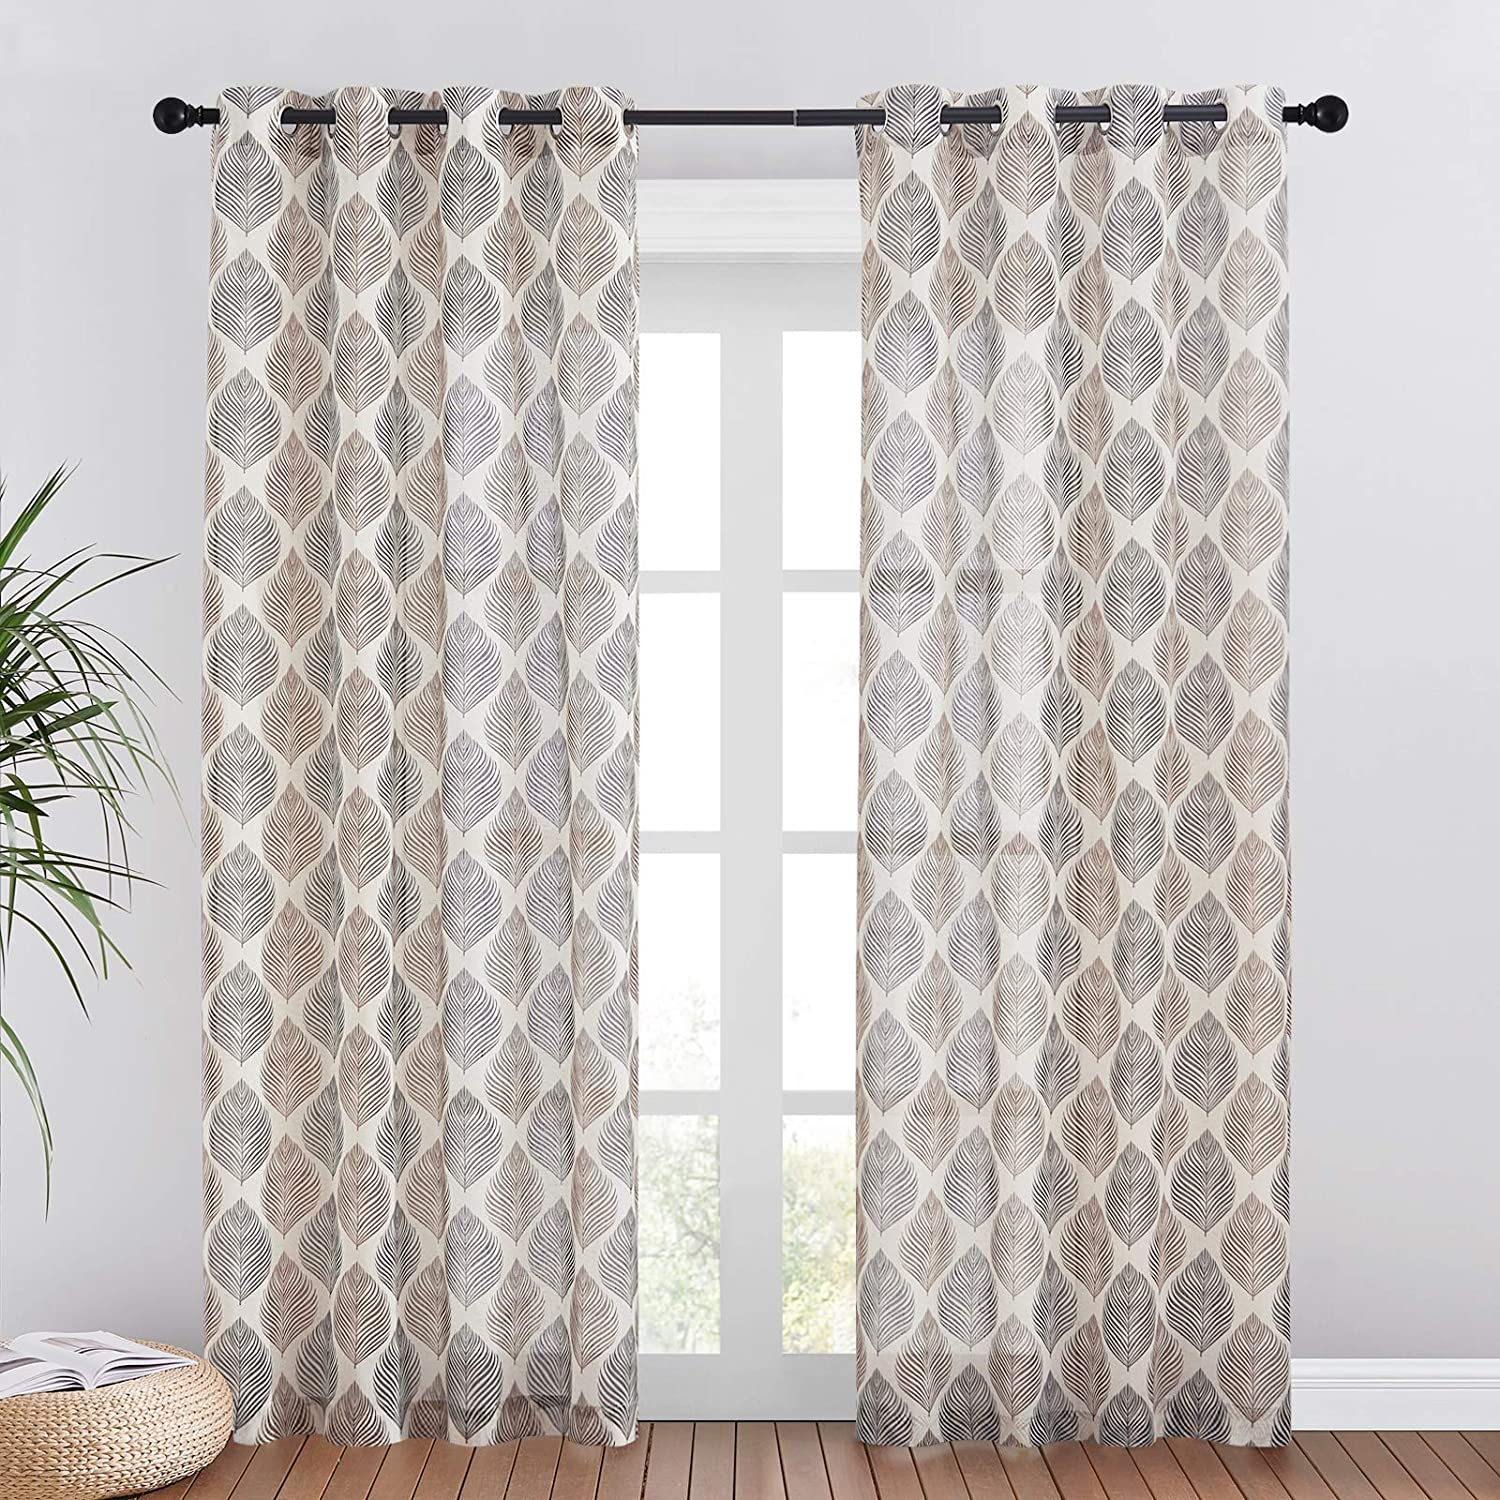 RYB HOME Linen Sheer Curtains - Privacy Semi Sheer Flax Blend Curtains Light Glare Filtering for Home Office Parlor Bedroom Window, 1 Pair, 50 inch Wide x 84 inch Long, Taupe & Black